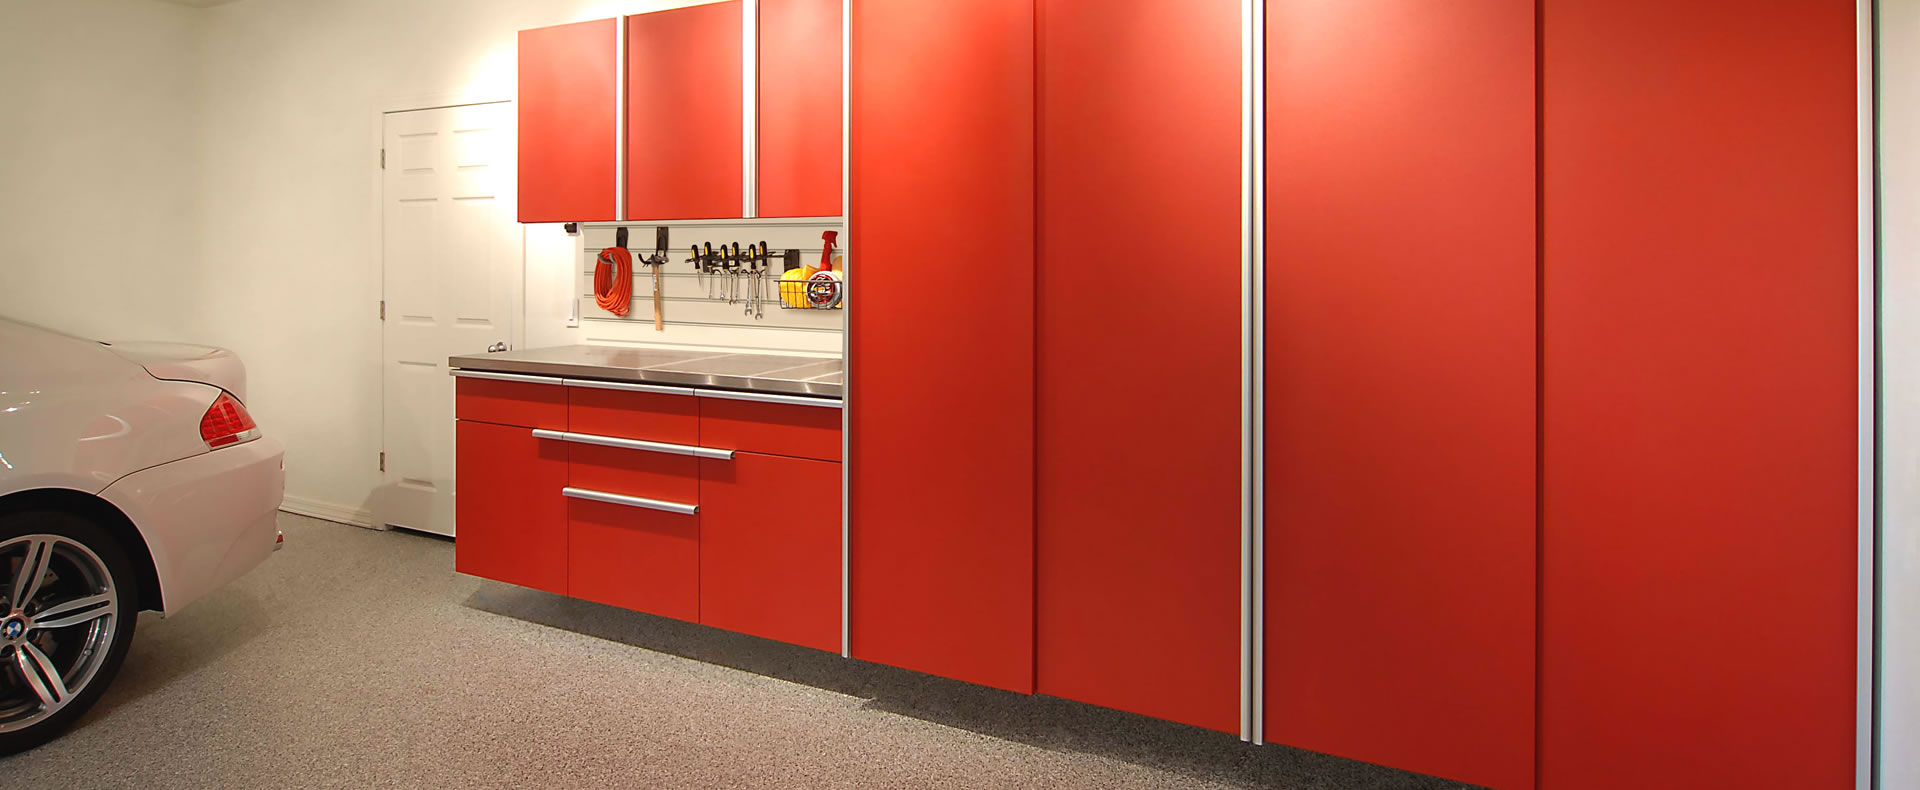 Garage Floor Coating Virginia Garage Flooring Tile Cabinets Storage And Organization Systems